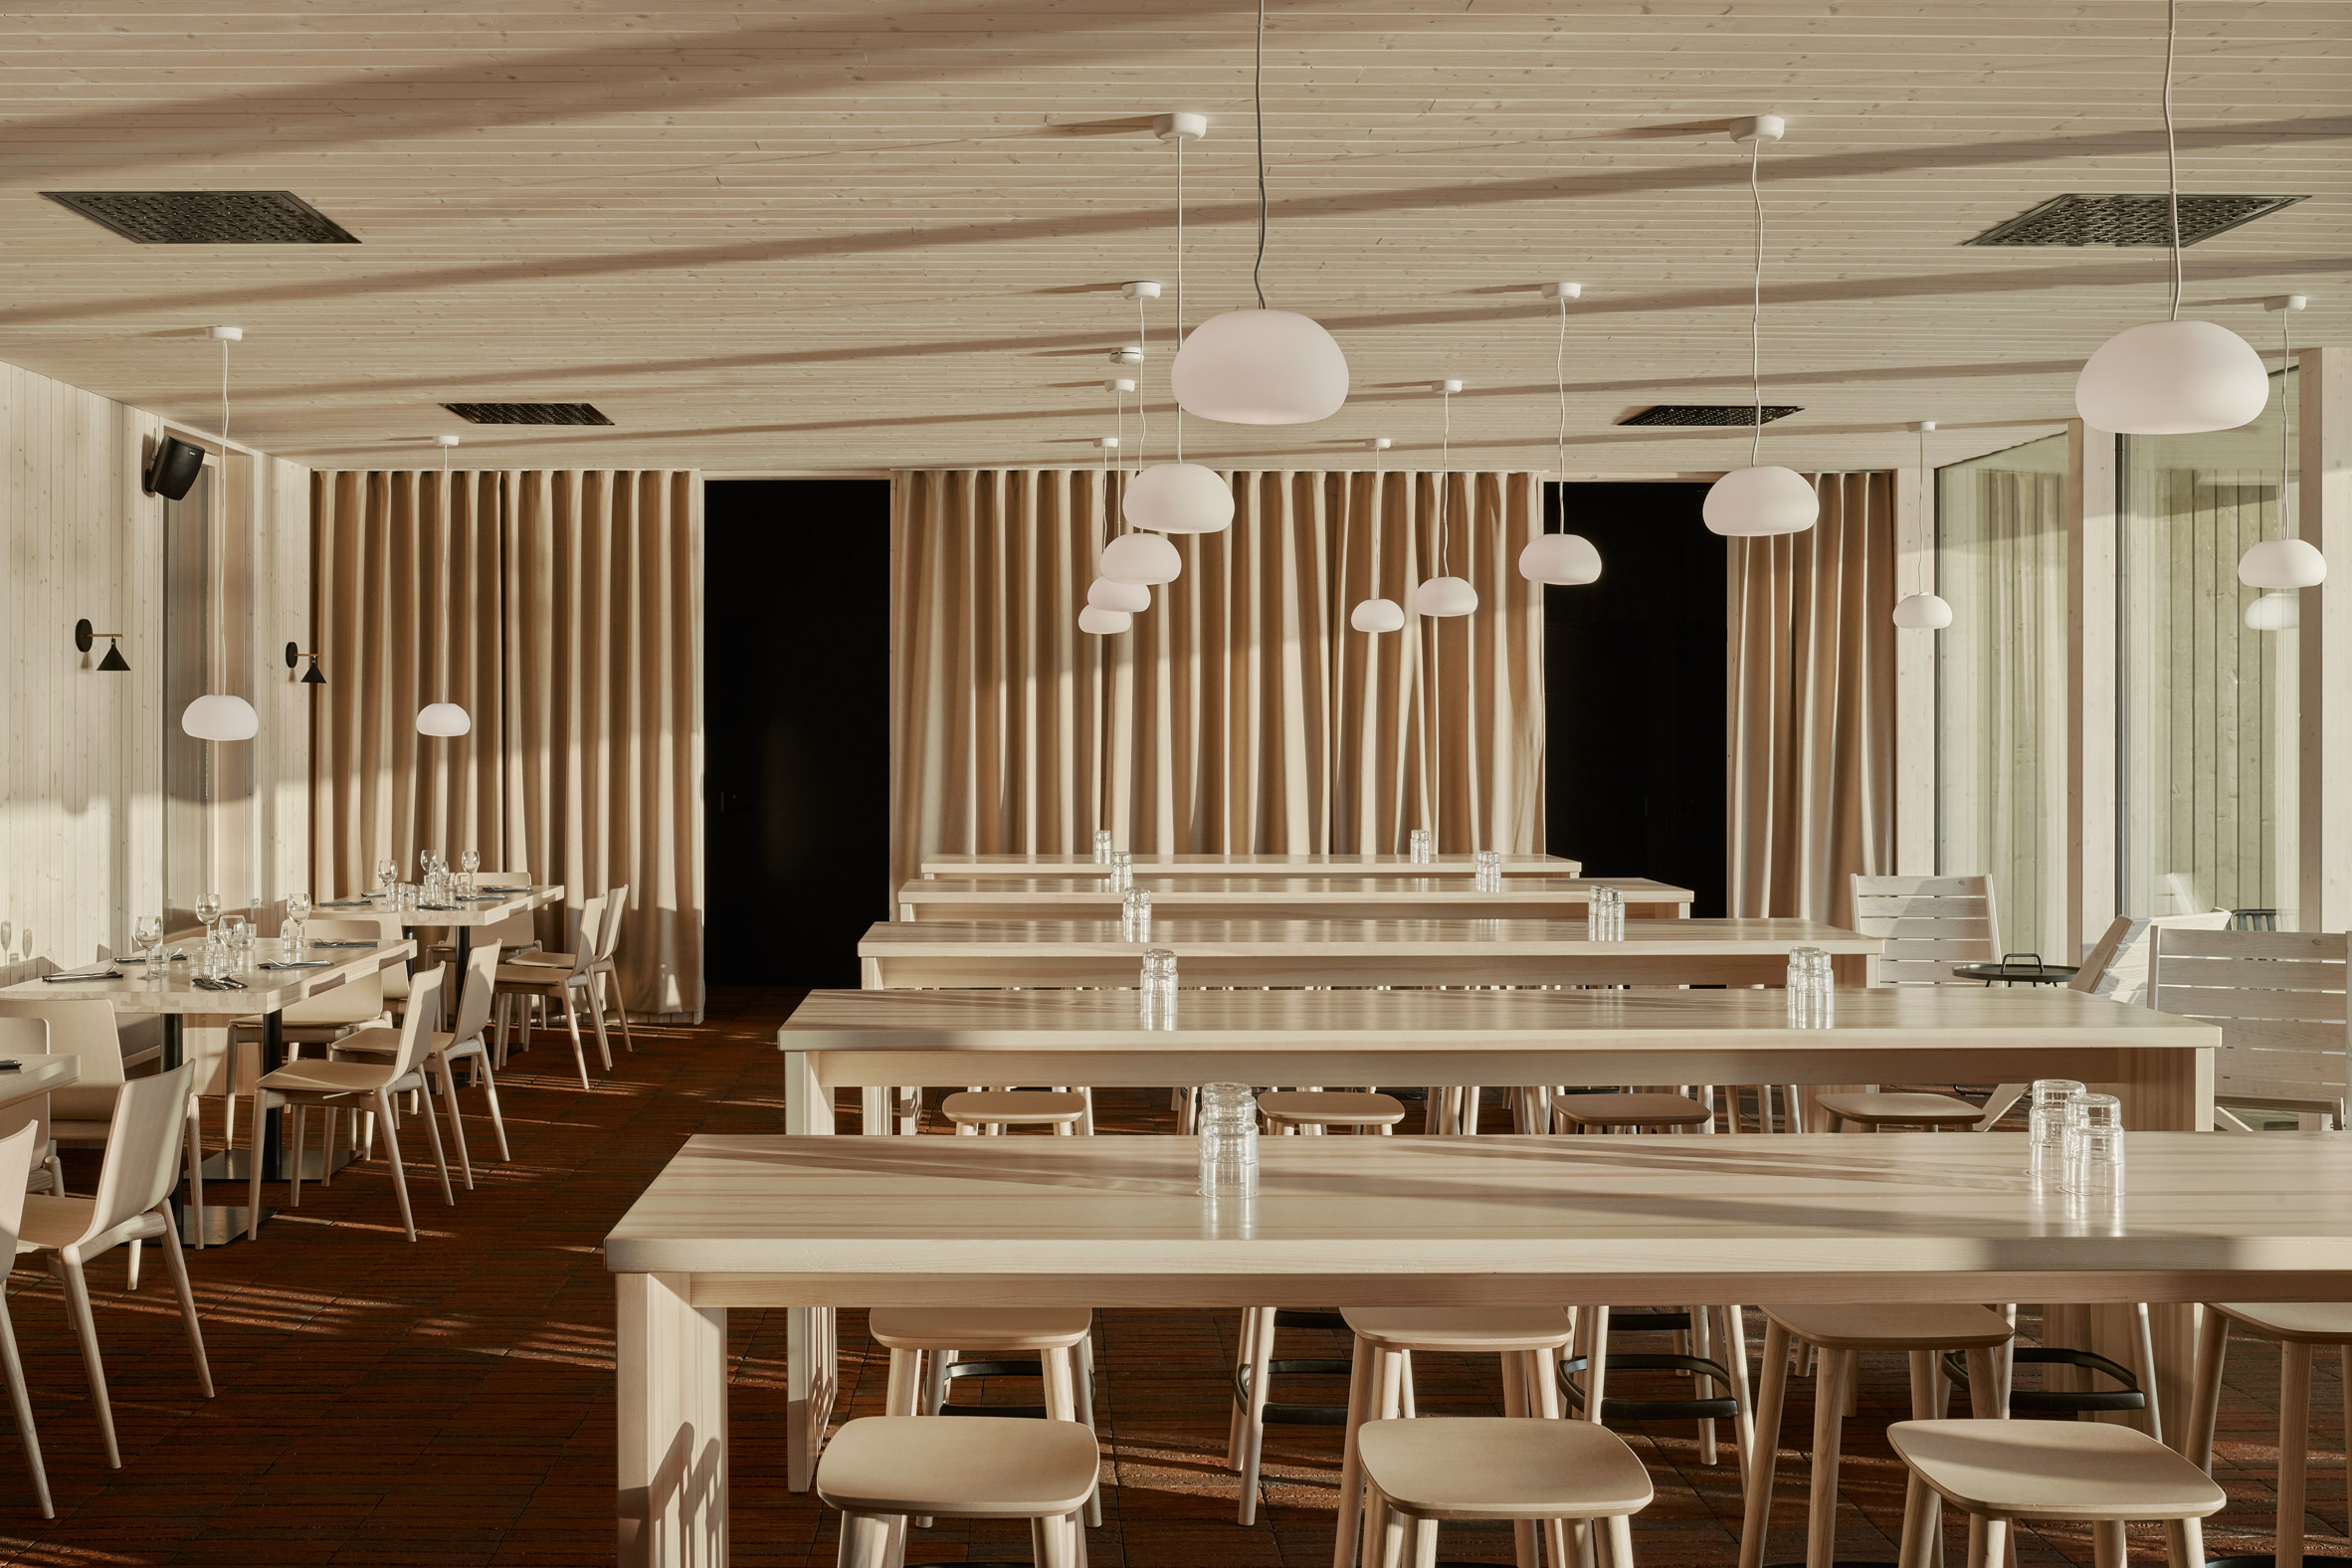 A wood-lined restaurant interior